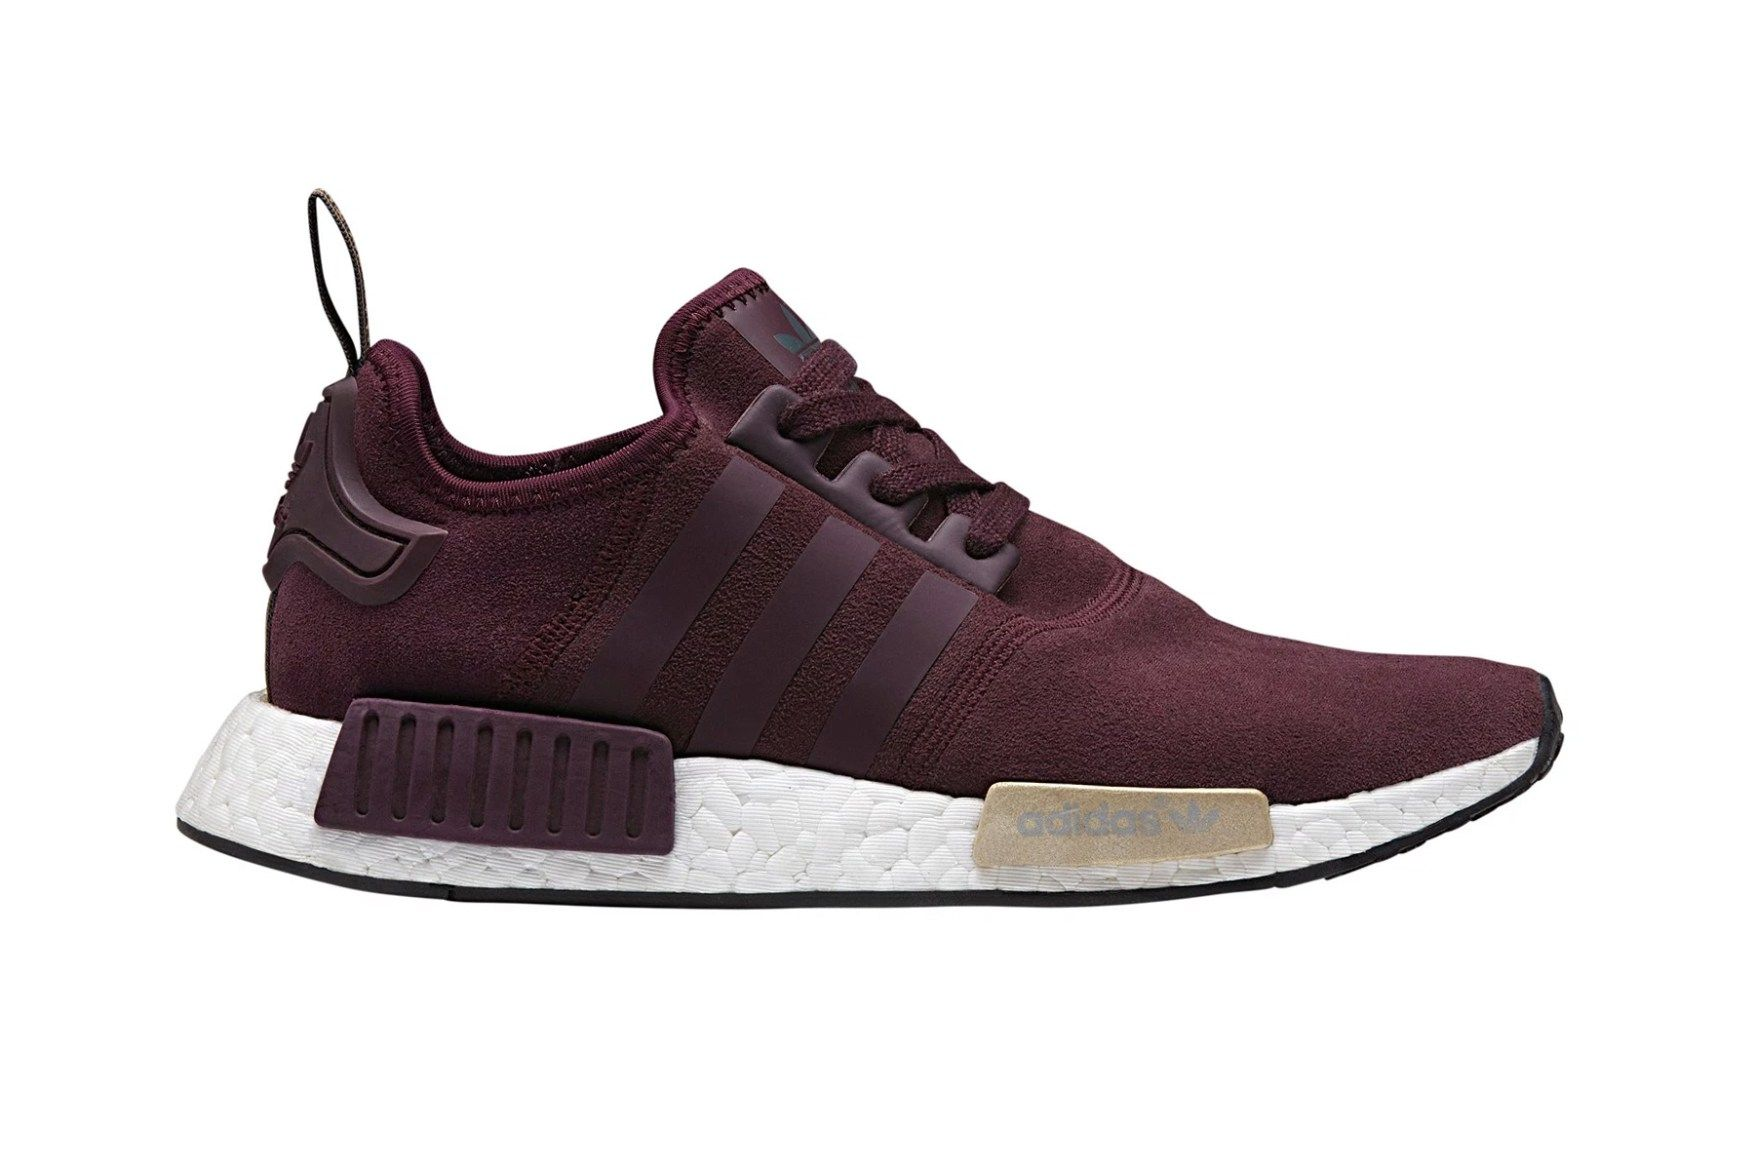 adidas Originals Introduces a Women's Exclusive Suede NMD